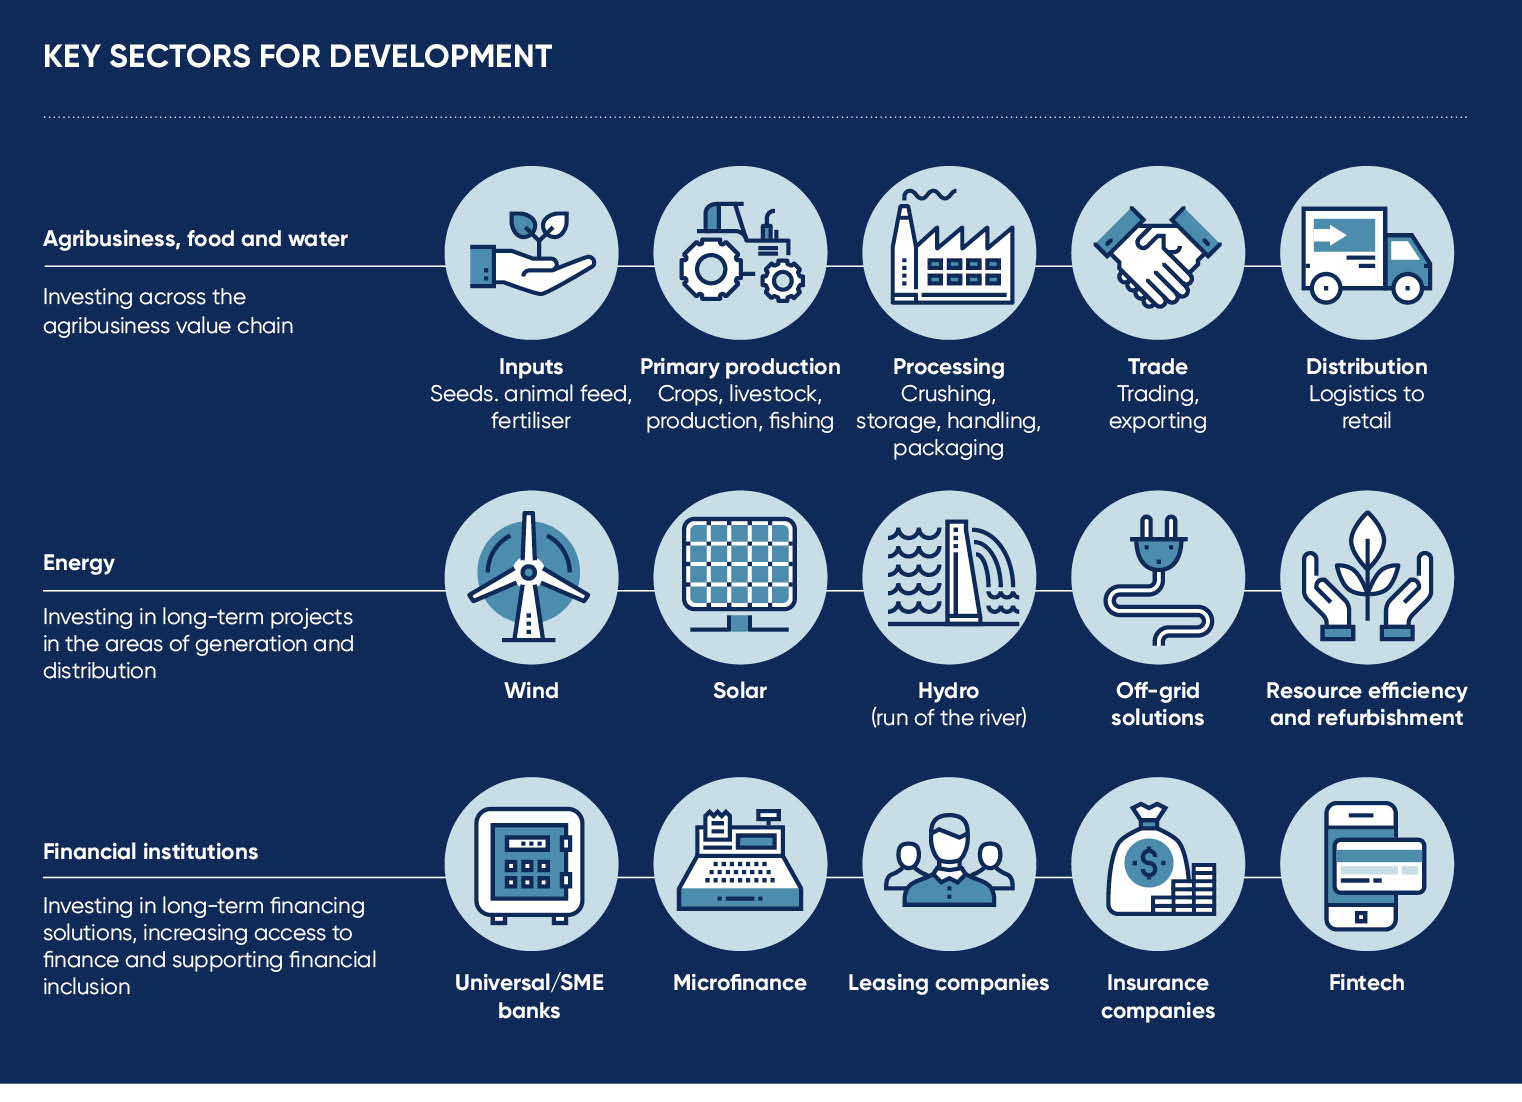 Key sectors for development infographic